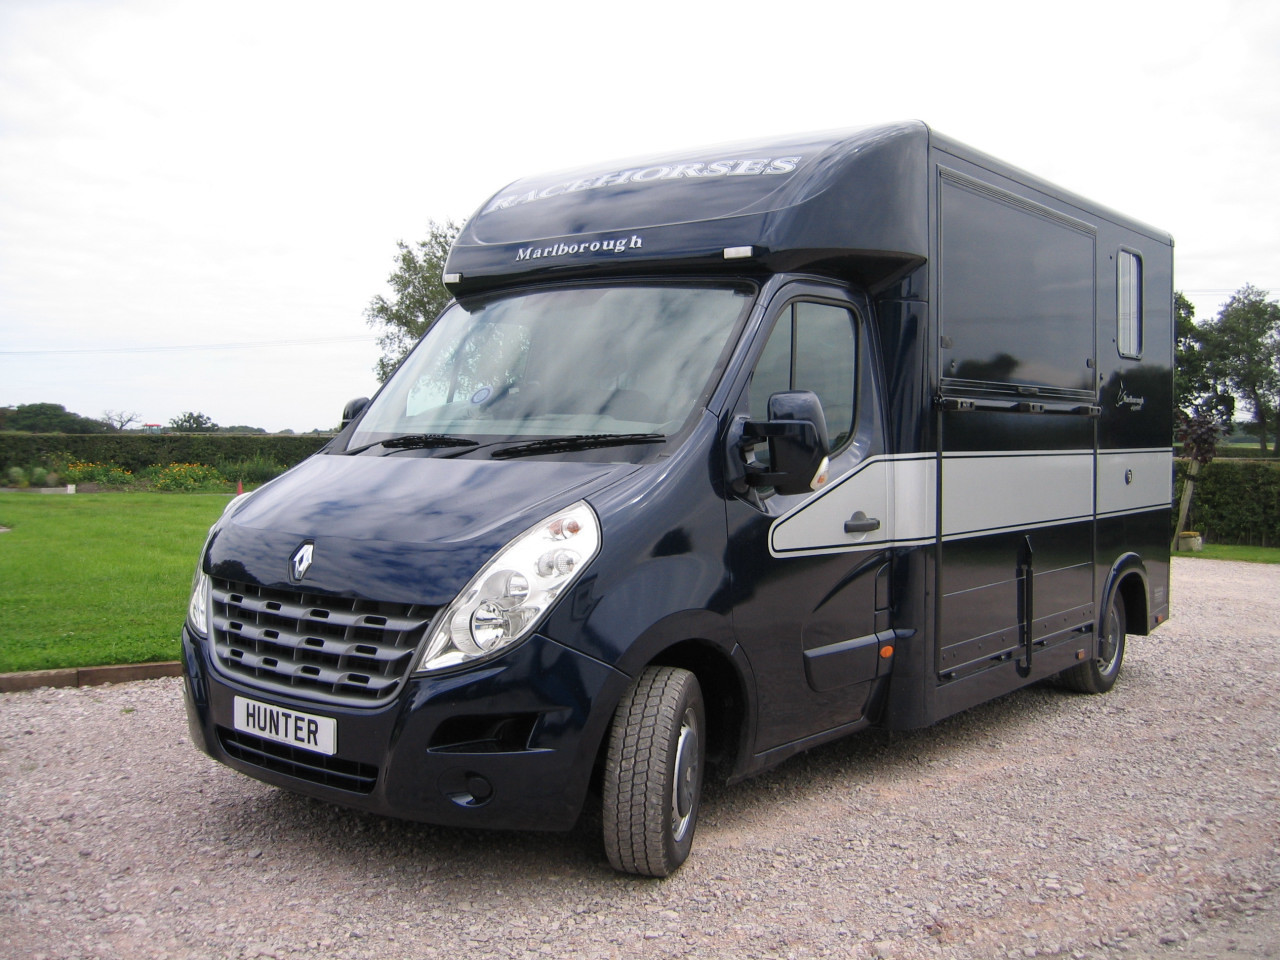 Horse Boxes for Sale in Birkenhead